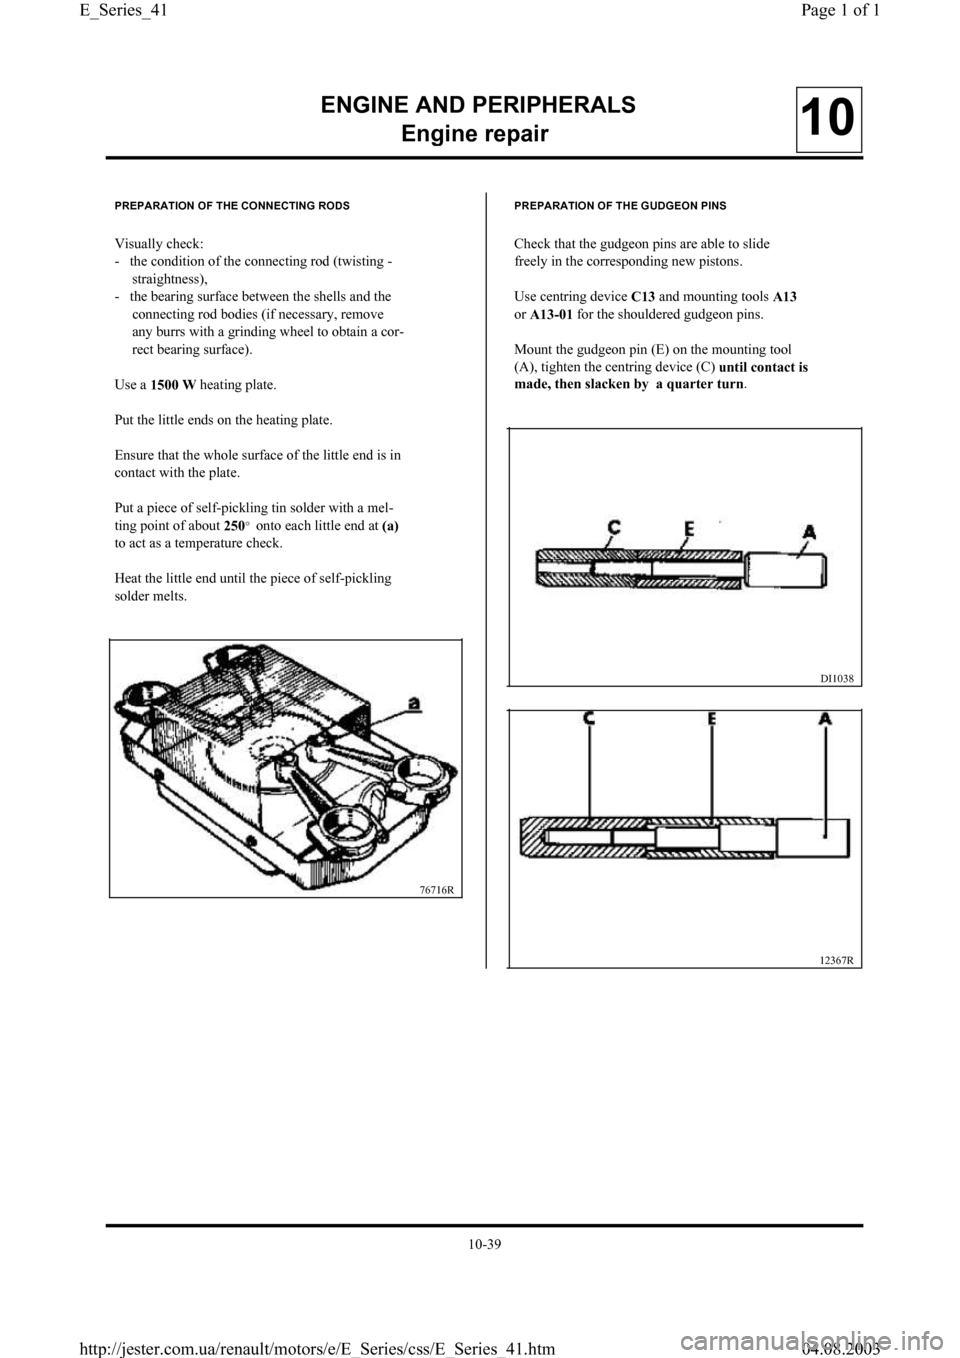 RENAULT CLIO 1997 X57 / 1.G Petrol Engines Workshop Manual, Page 41